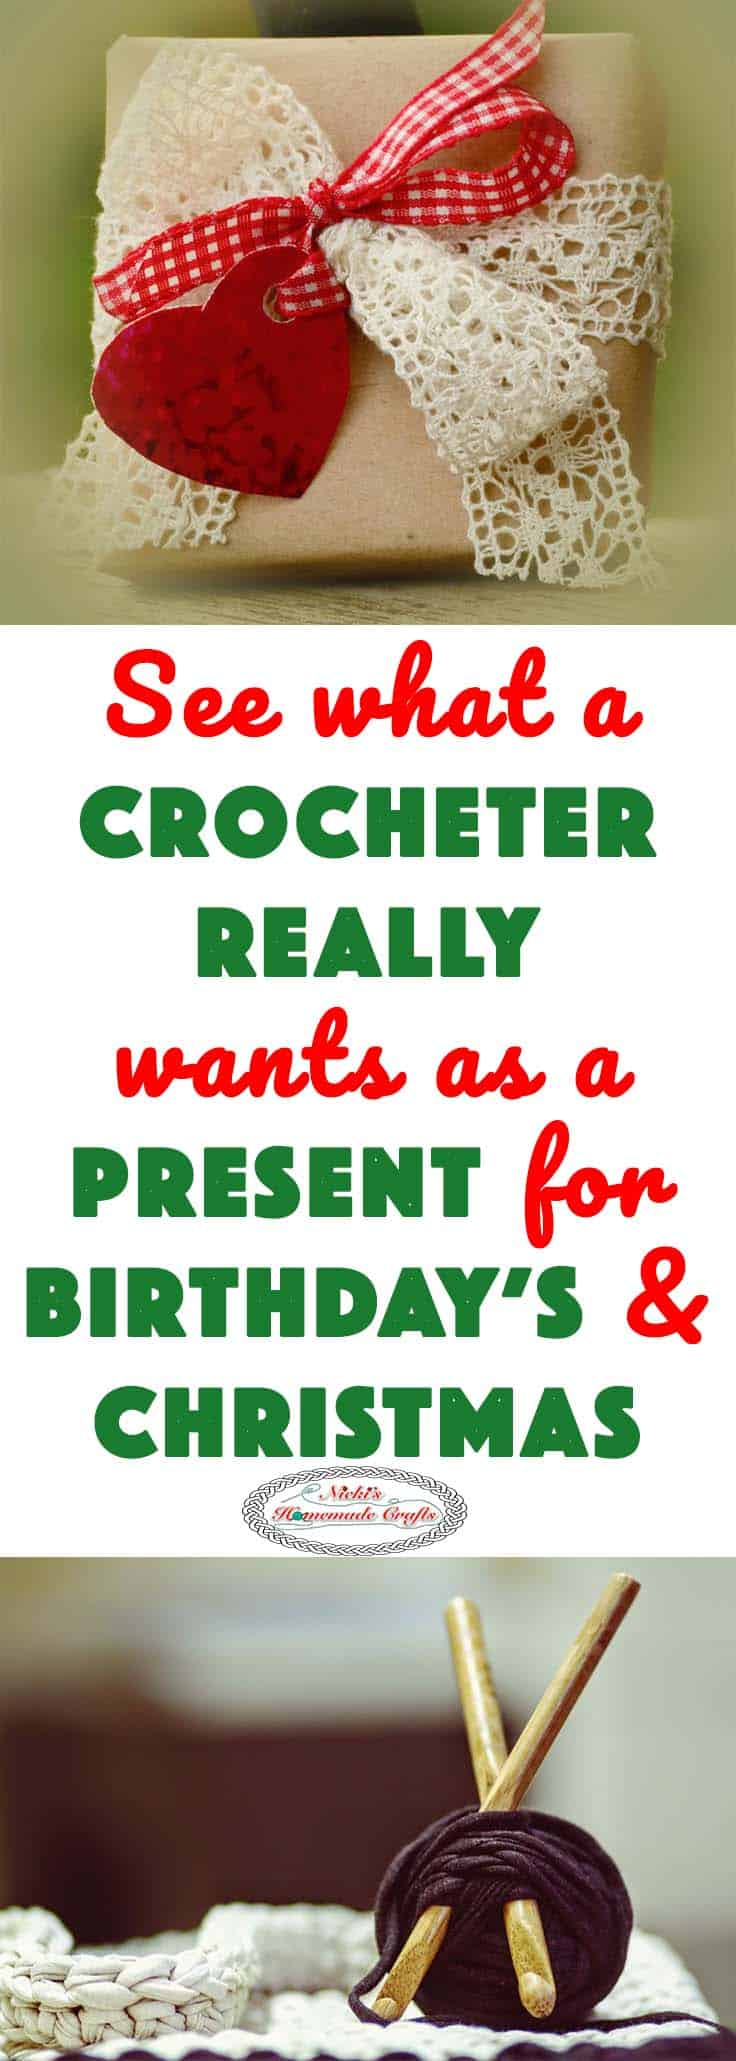 What a Crocheter REALLY wants as a Present for Christmas and Birthday's by Nicki's Homemade Crafts #crochet #present #gift #christmas #birthday #giving #happy #hooks #yarn